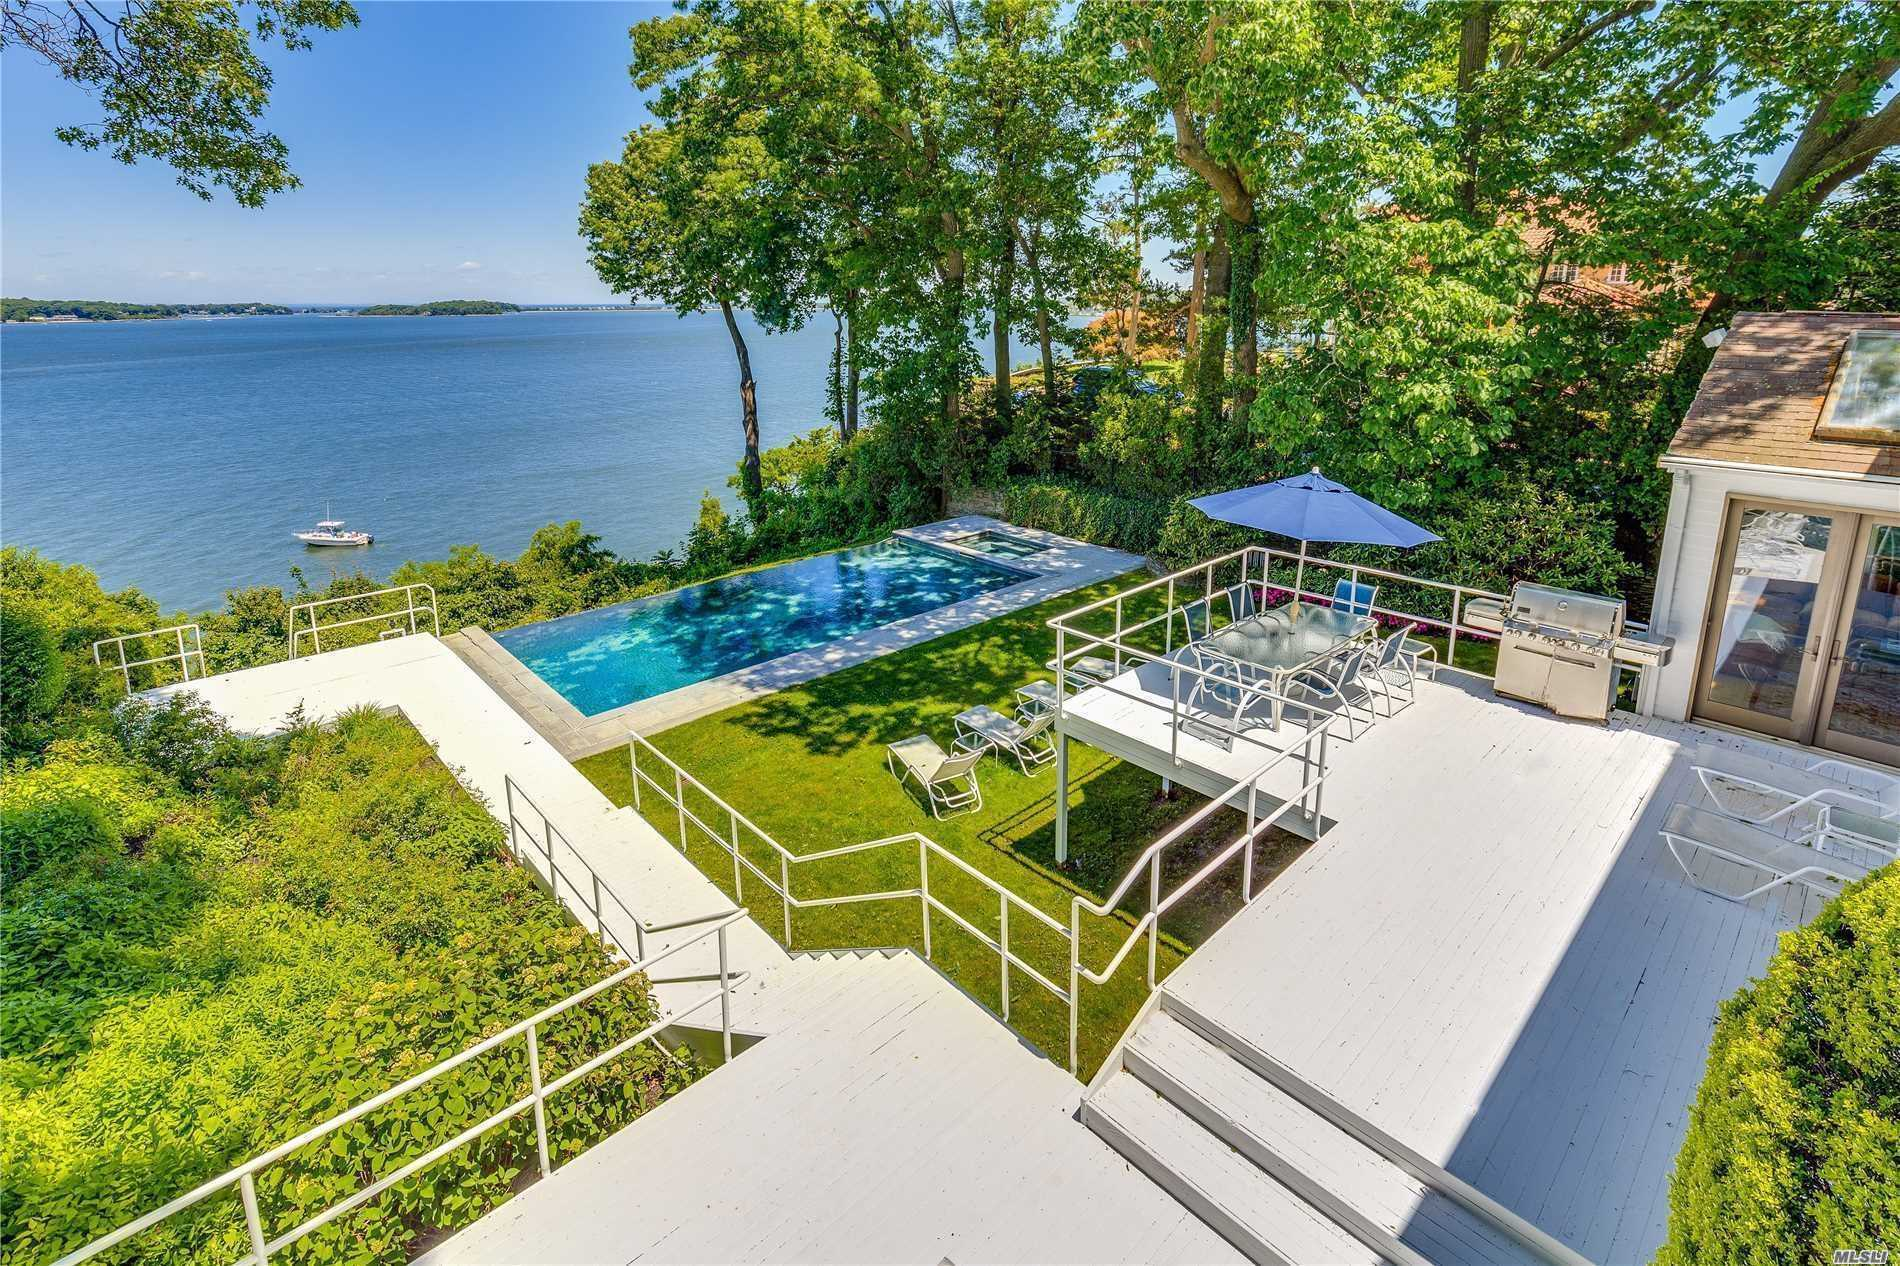 Overlooking Northport Bay, This Waterfront Post Modern Home Offers Dramatic Views W/ Many Vantage Points. Enjoy Each Sunrise From Most Every Rm W/ Soaring Windows Incl Mster Ste W/ Sauna, 2 Wic, & Balcony. Entertain Off Sleek Eik W/ Glass Doors Leads To Bi-Level Deck & Picturesque Gunite Infinity Pool/Spa. Step Down To Your Private Observation Deck For Some Fun On The Bay. Convenient Approx 1000Sqft Office/Guest Ste W/ Fpl. Perfect For Year-Round Enjoyment Or A Weekend Getaway, Only 1Hr To Nyc!